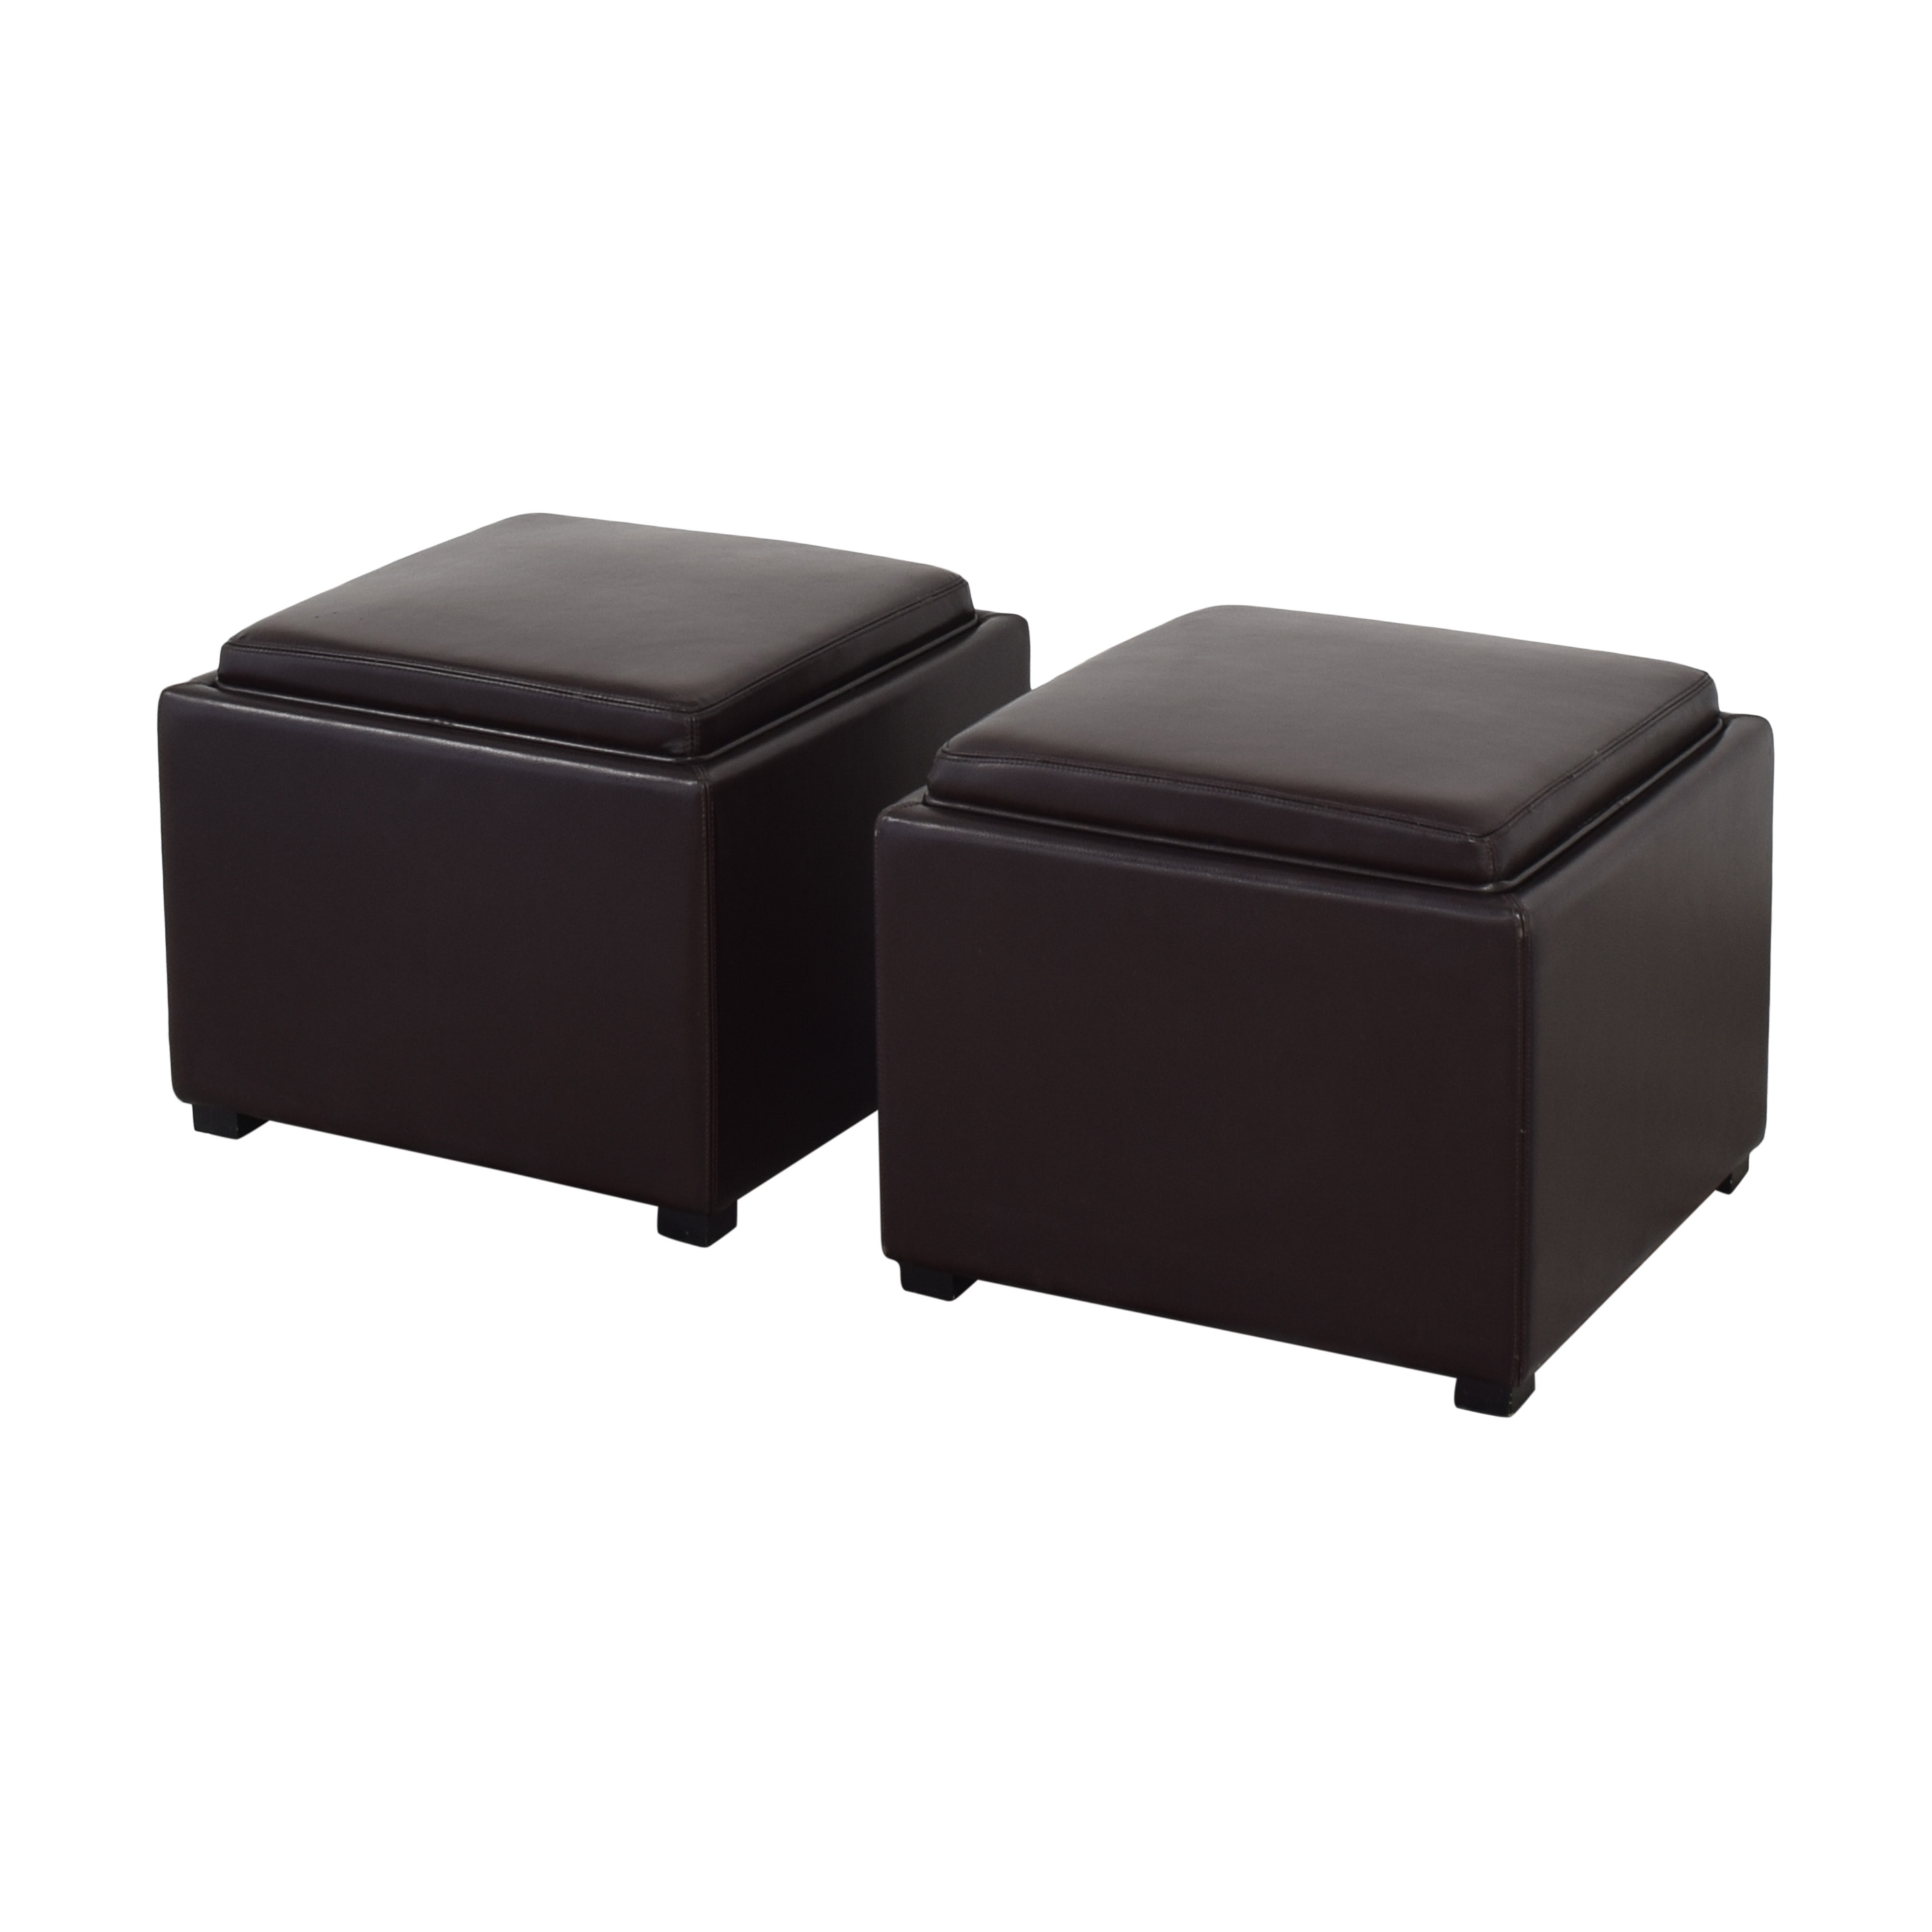 Crate & Barrel Crate & Barrel Stow Ottomans with Storage on sale